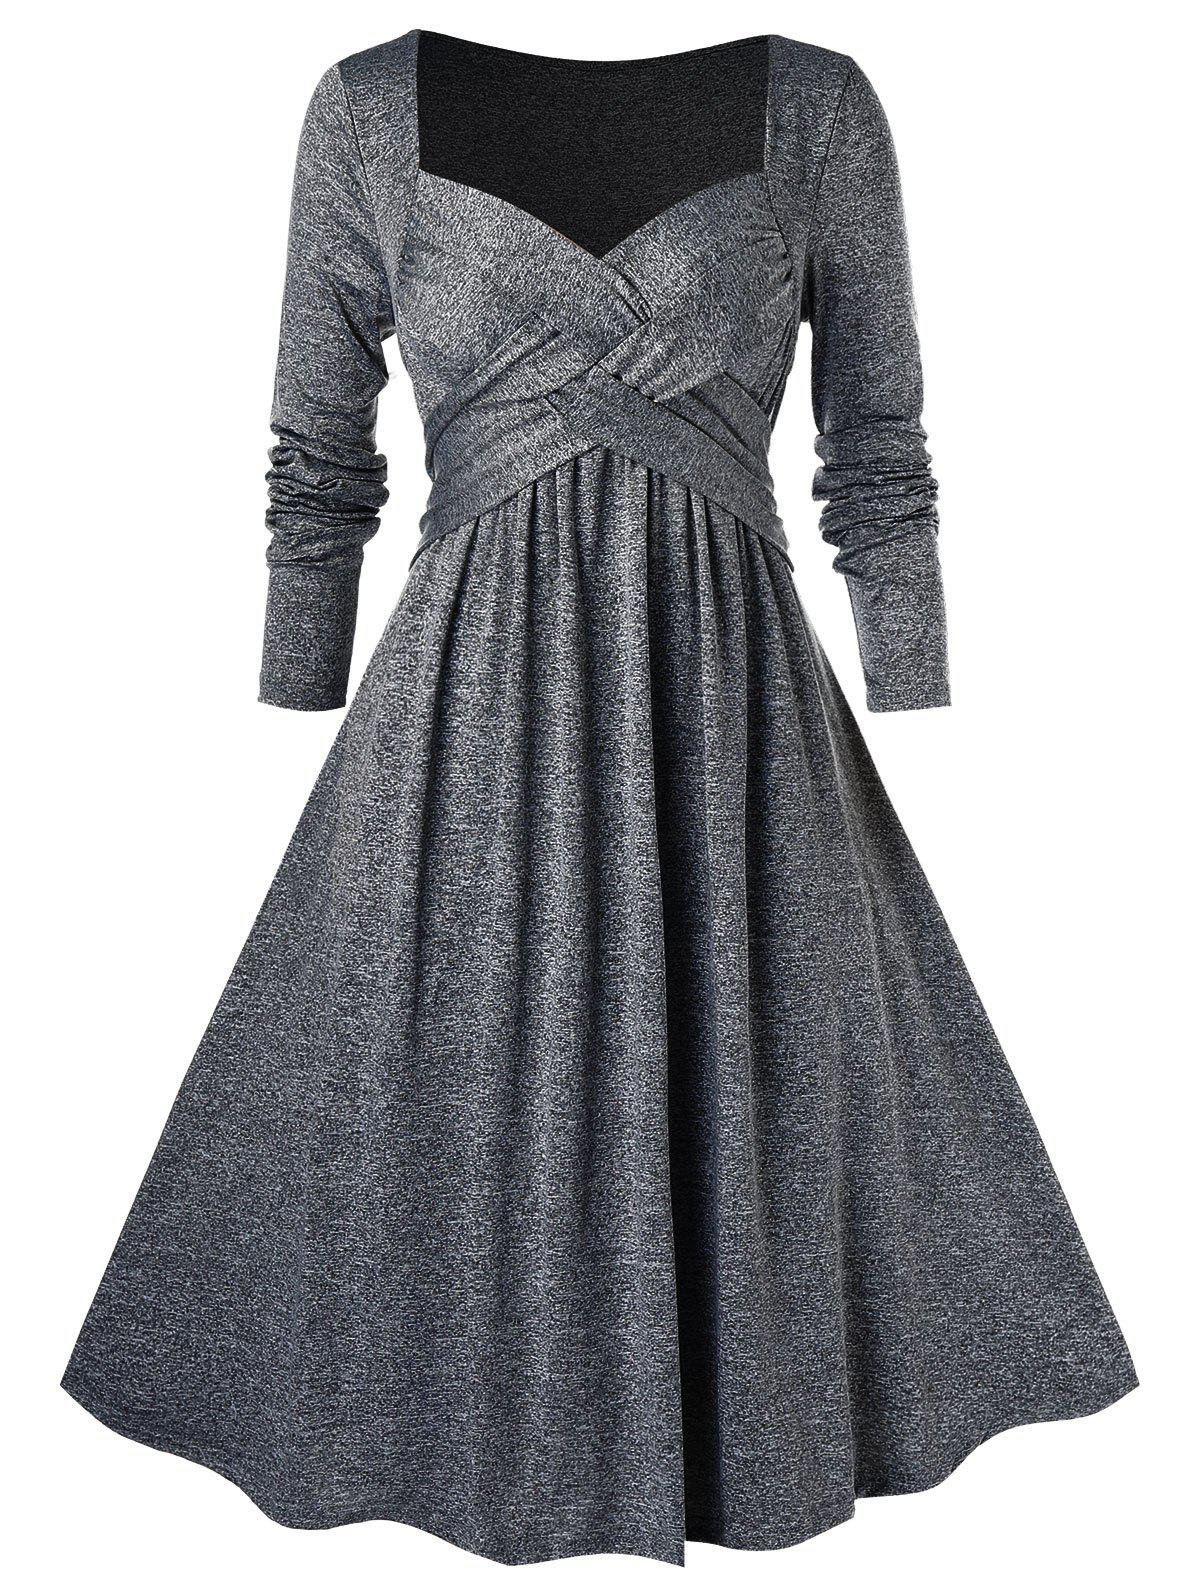 Plus Size Crossover Midi Flare Dress - GRAY CLOUD 3X